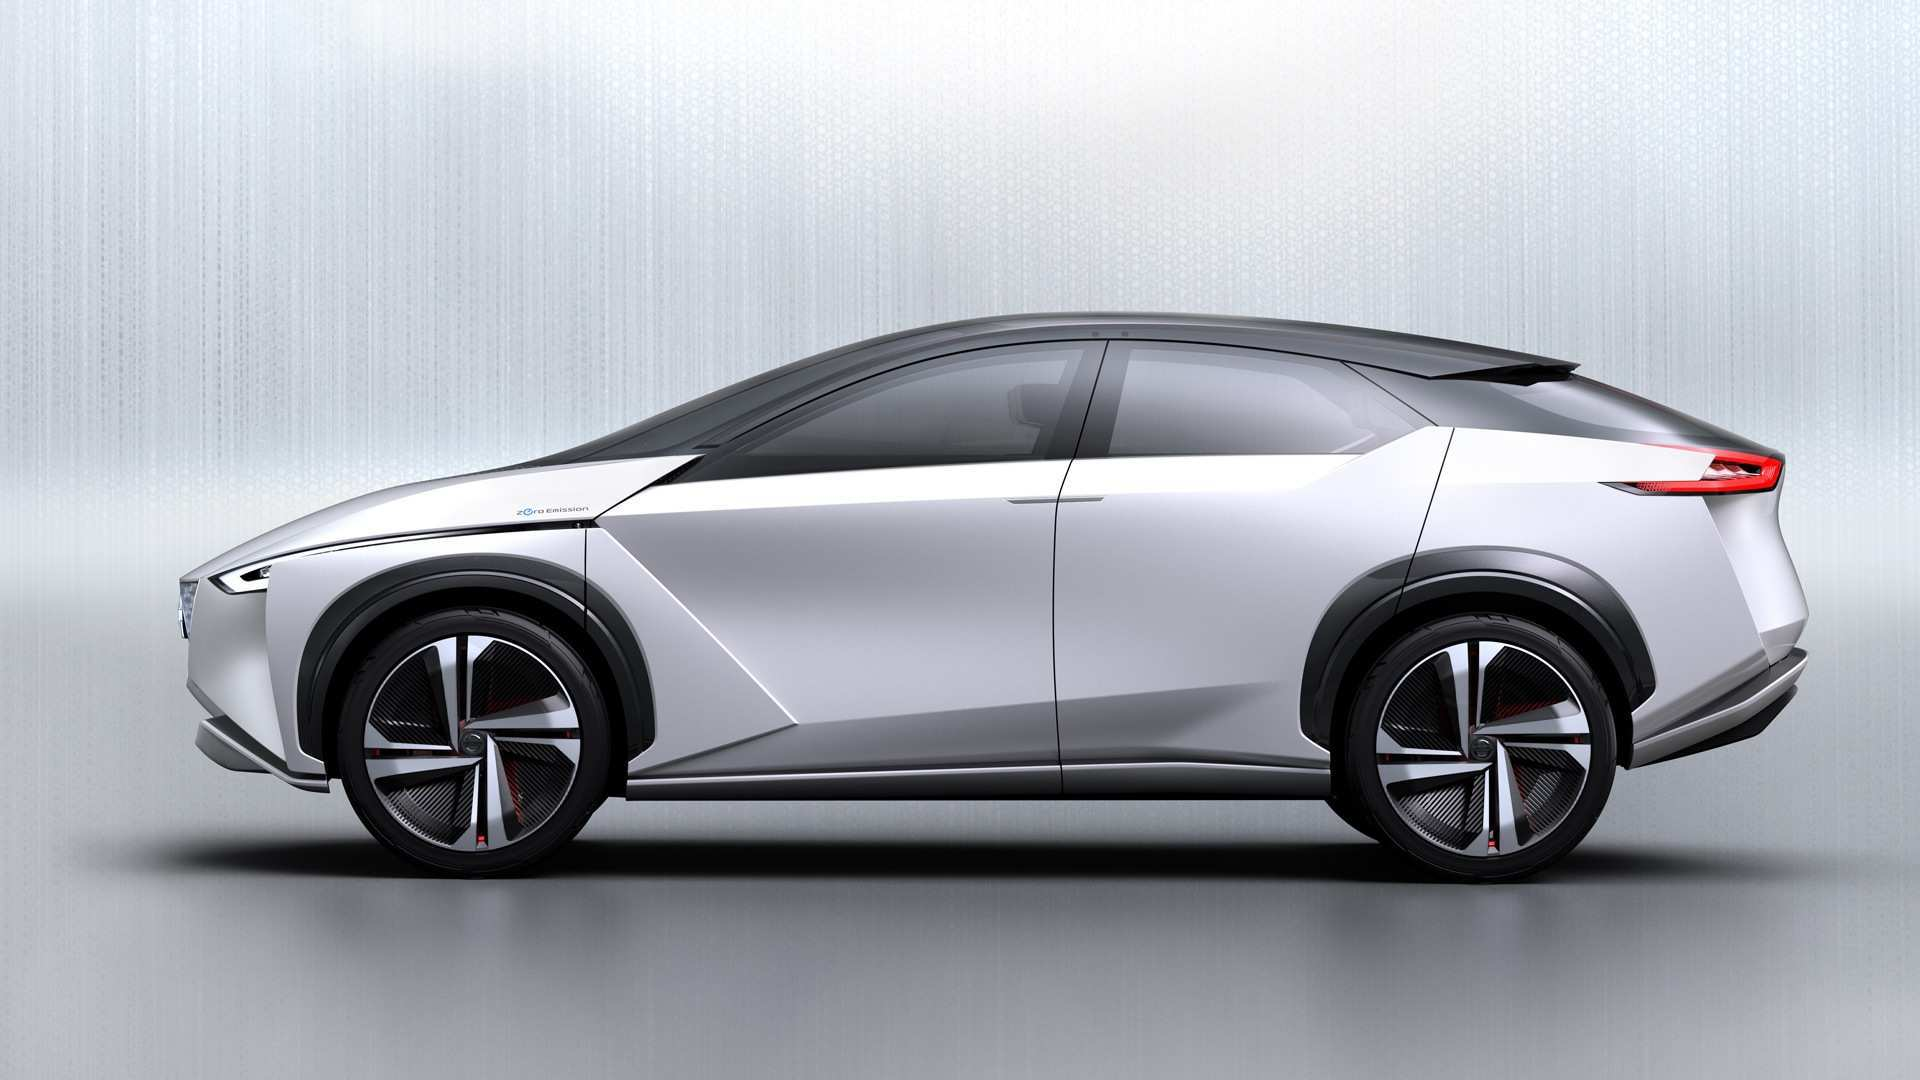 96 The Best Nissan Imx 2020 Specs And Review